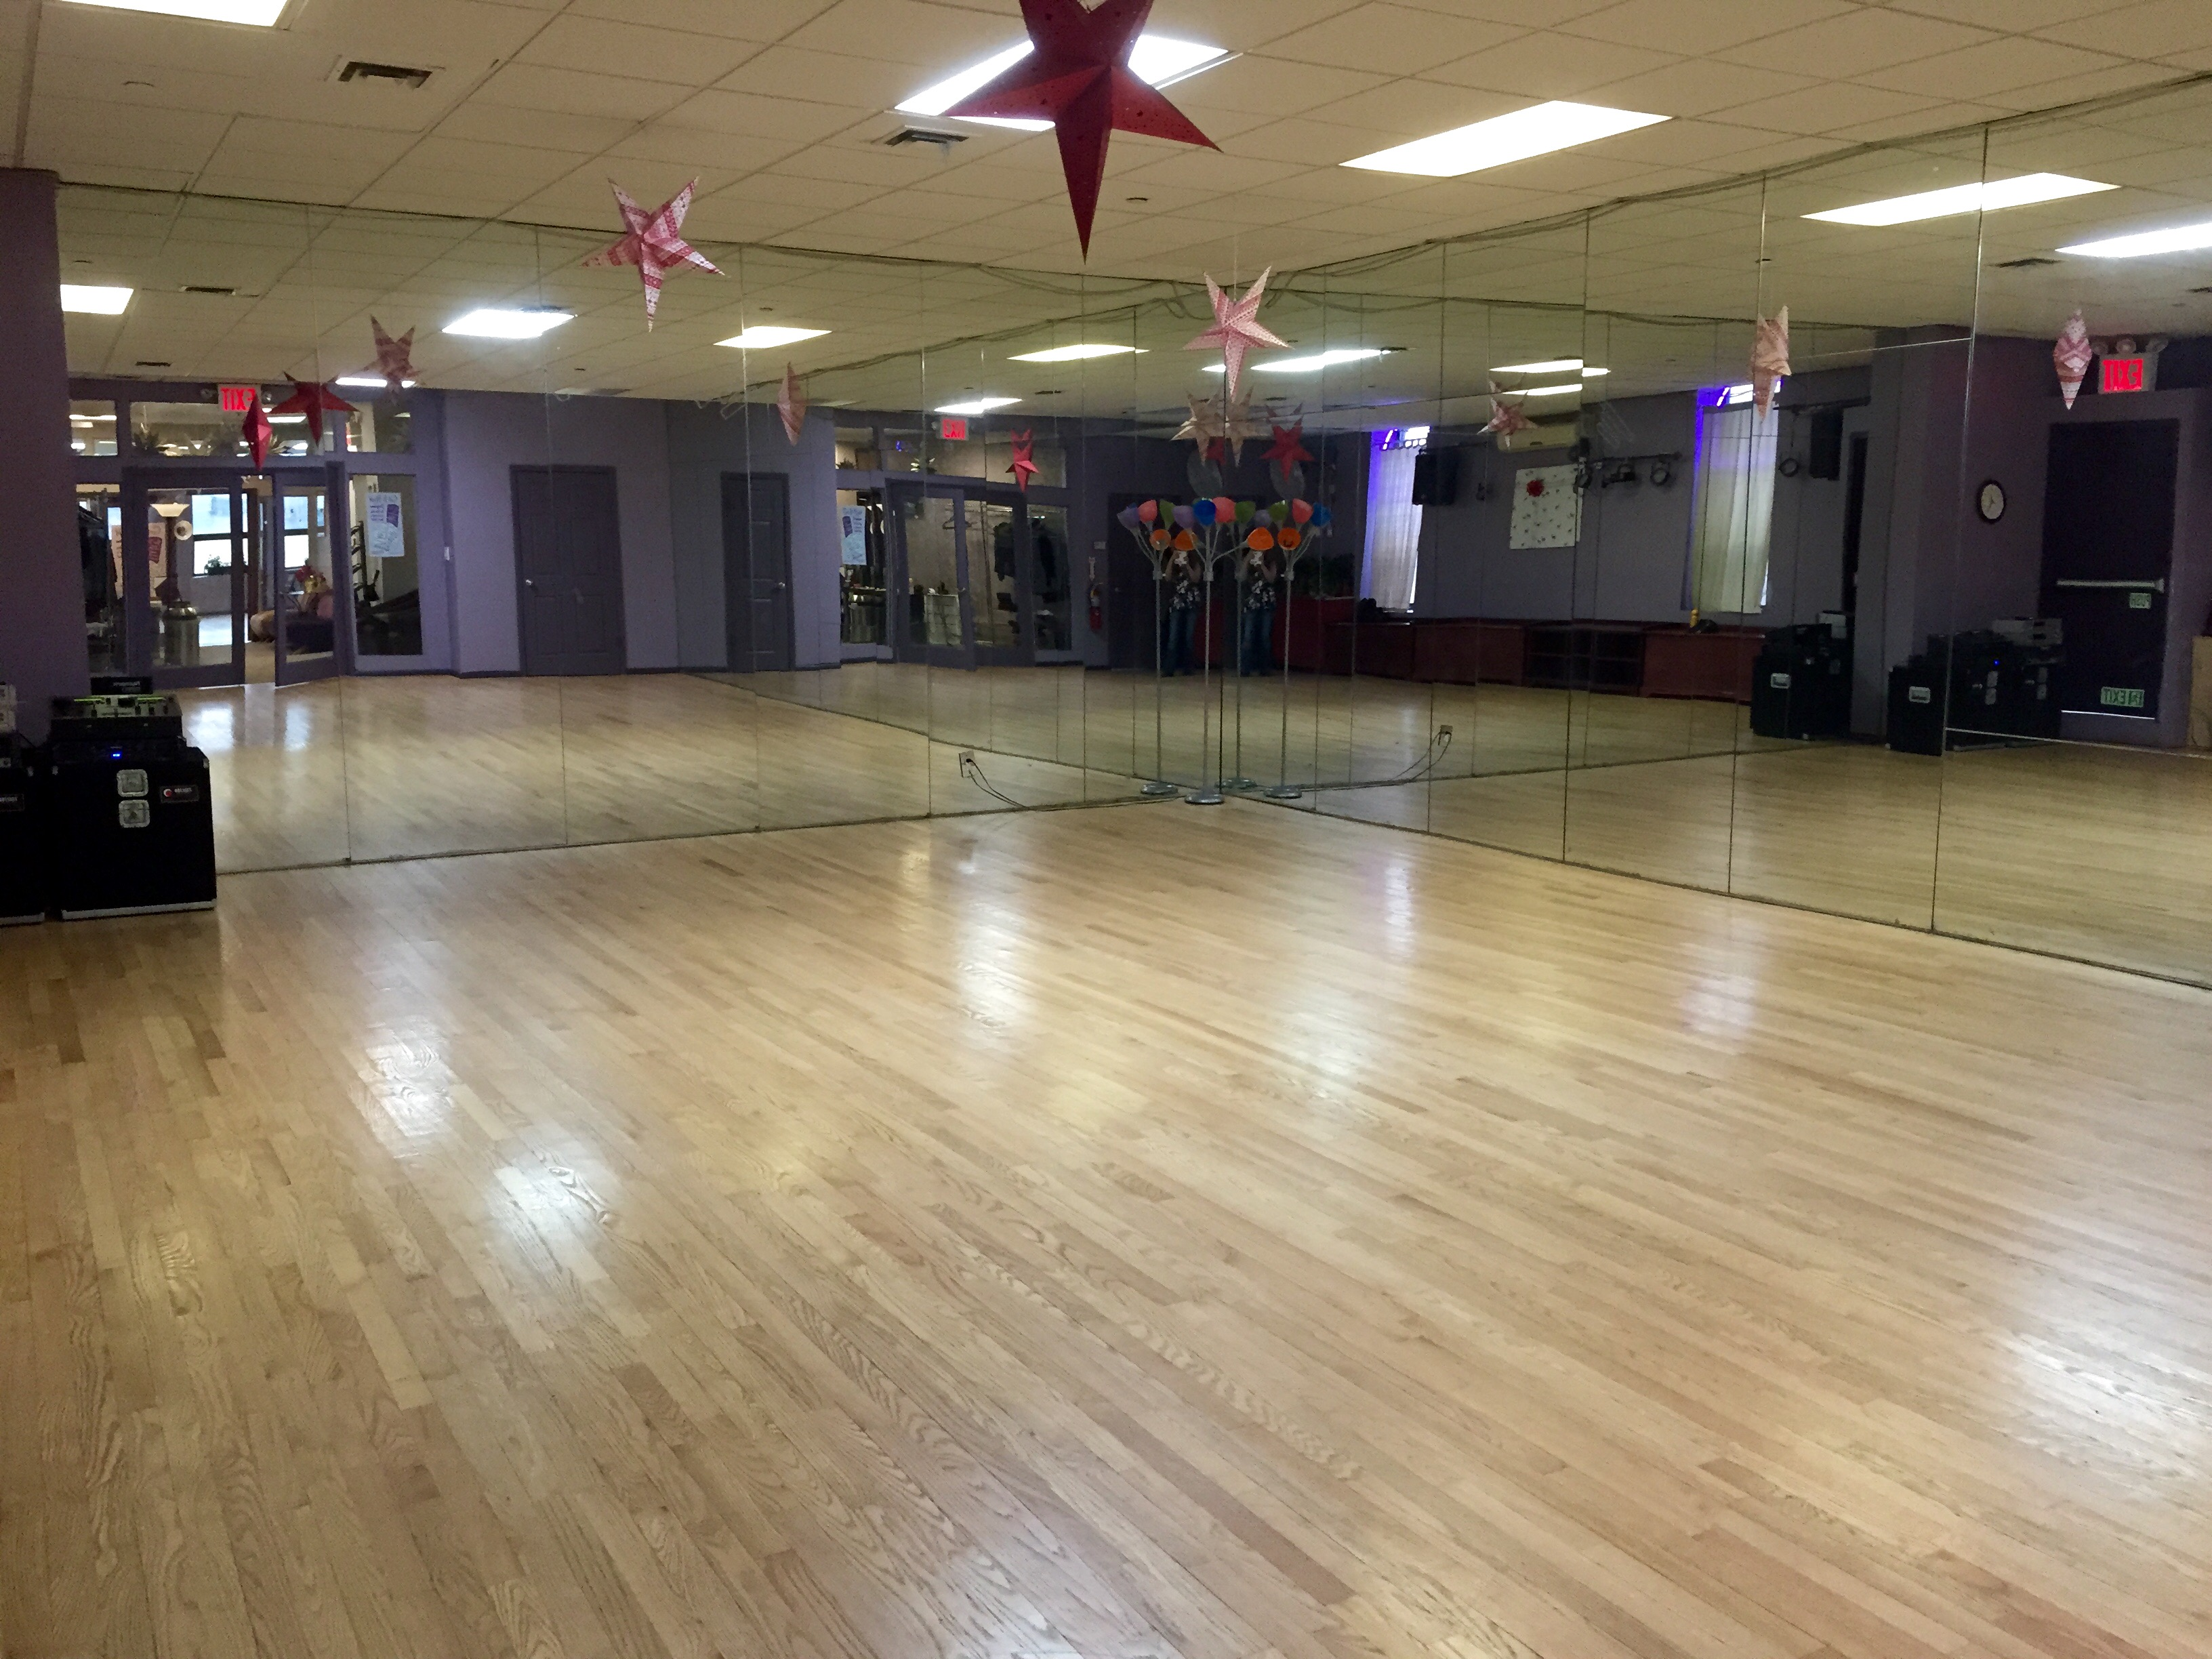 Rental Space NYC for Audition & Rehearsal Space Rental NYC